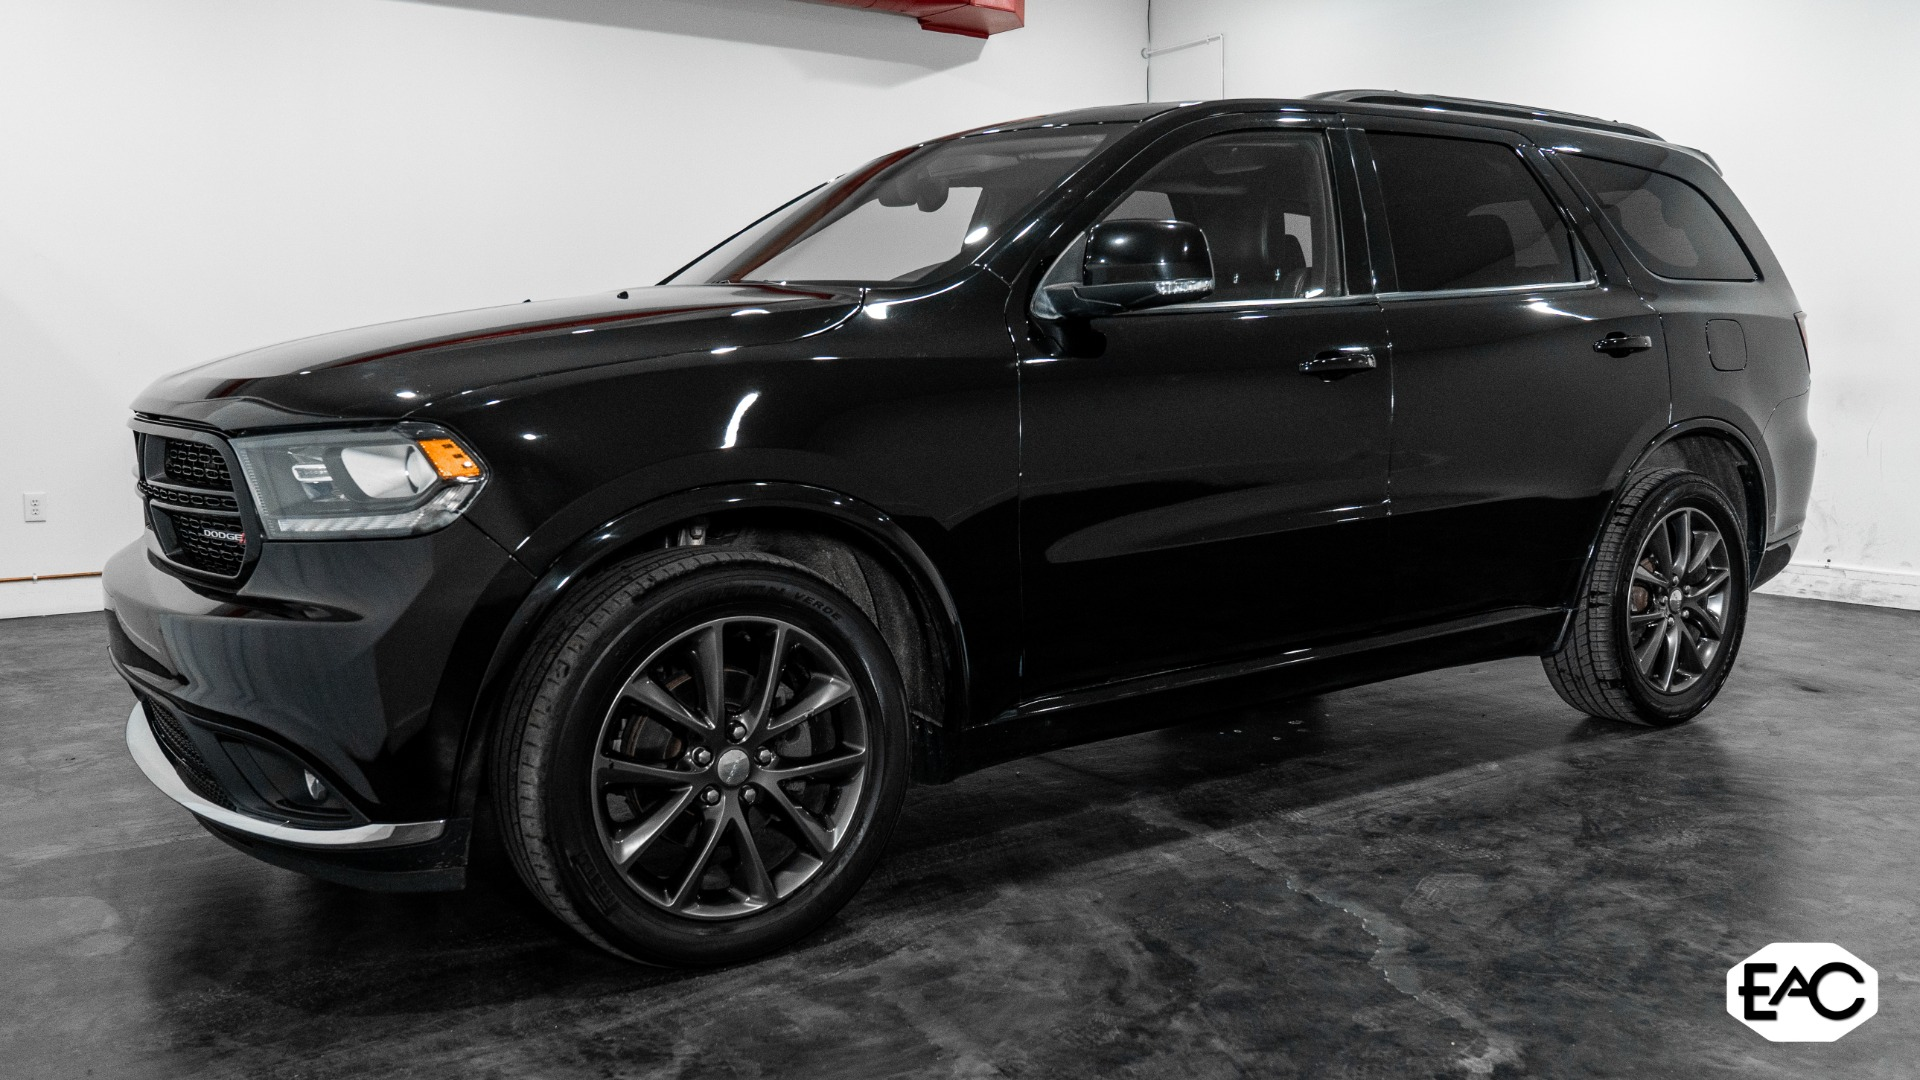 Used 2018 Dodge Durango GT for sale $22,990 at Empire Auto Collection in Warren MI 48091 1